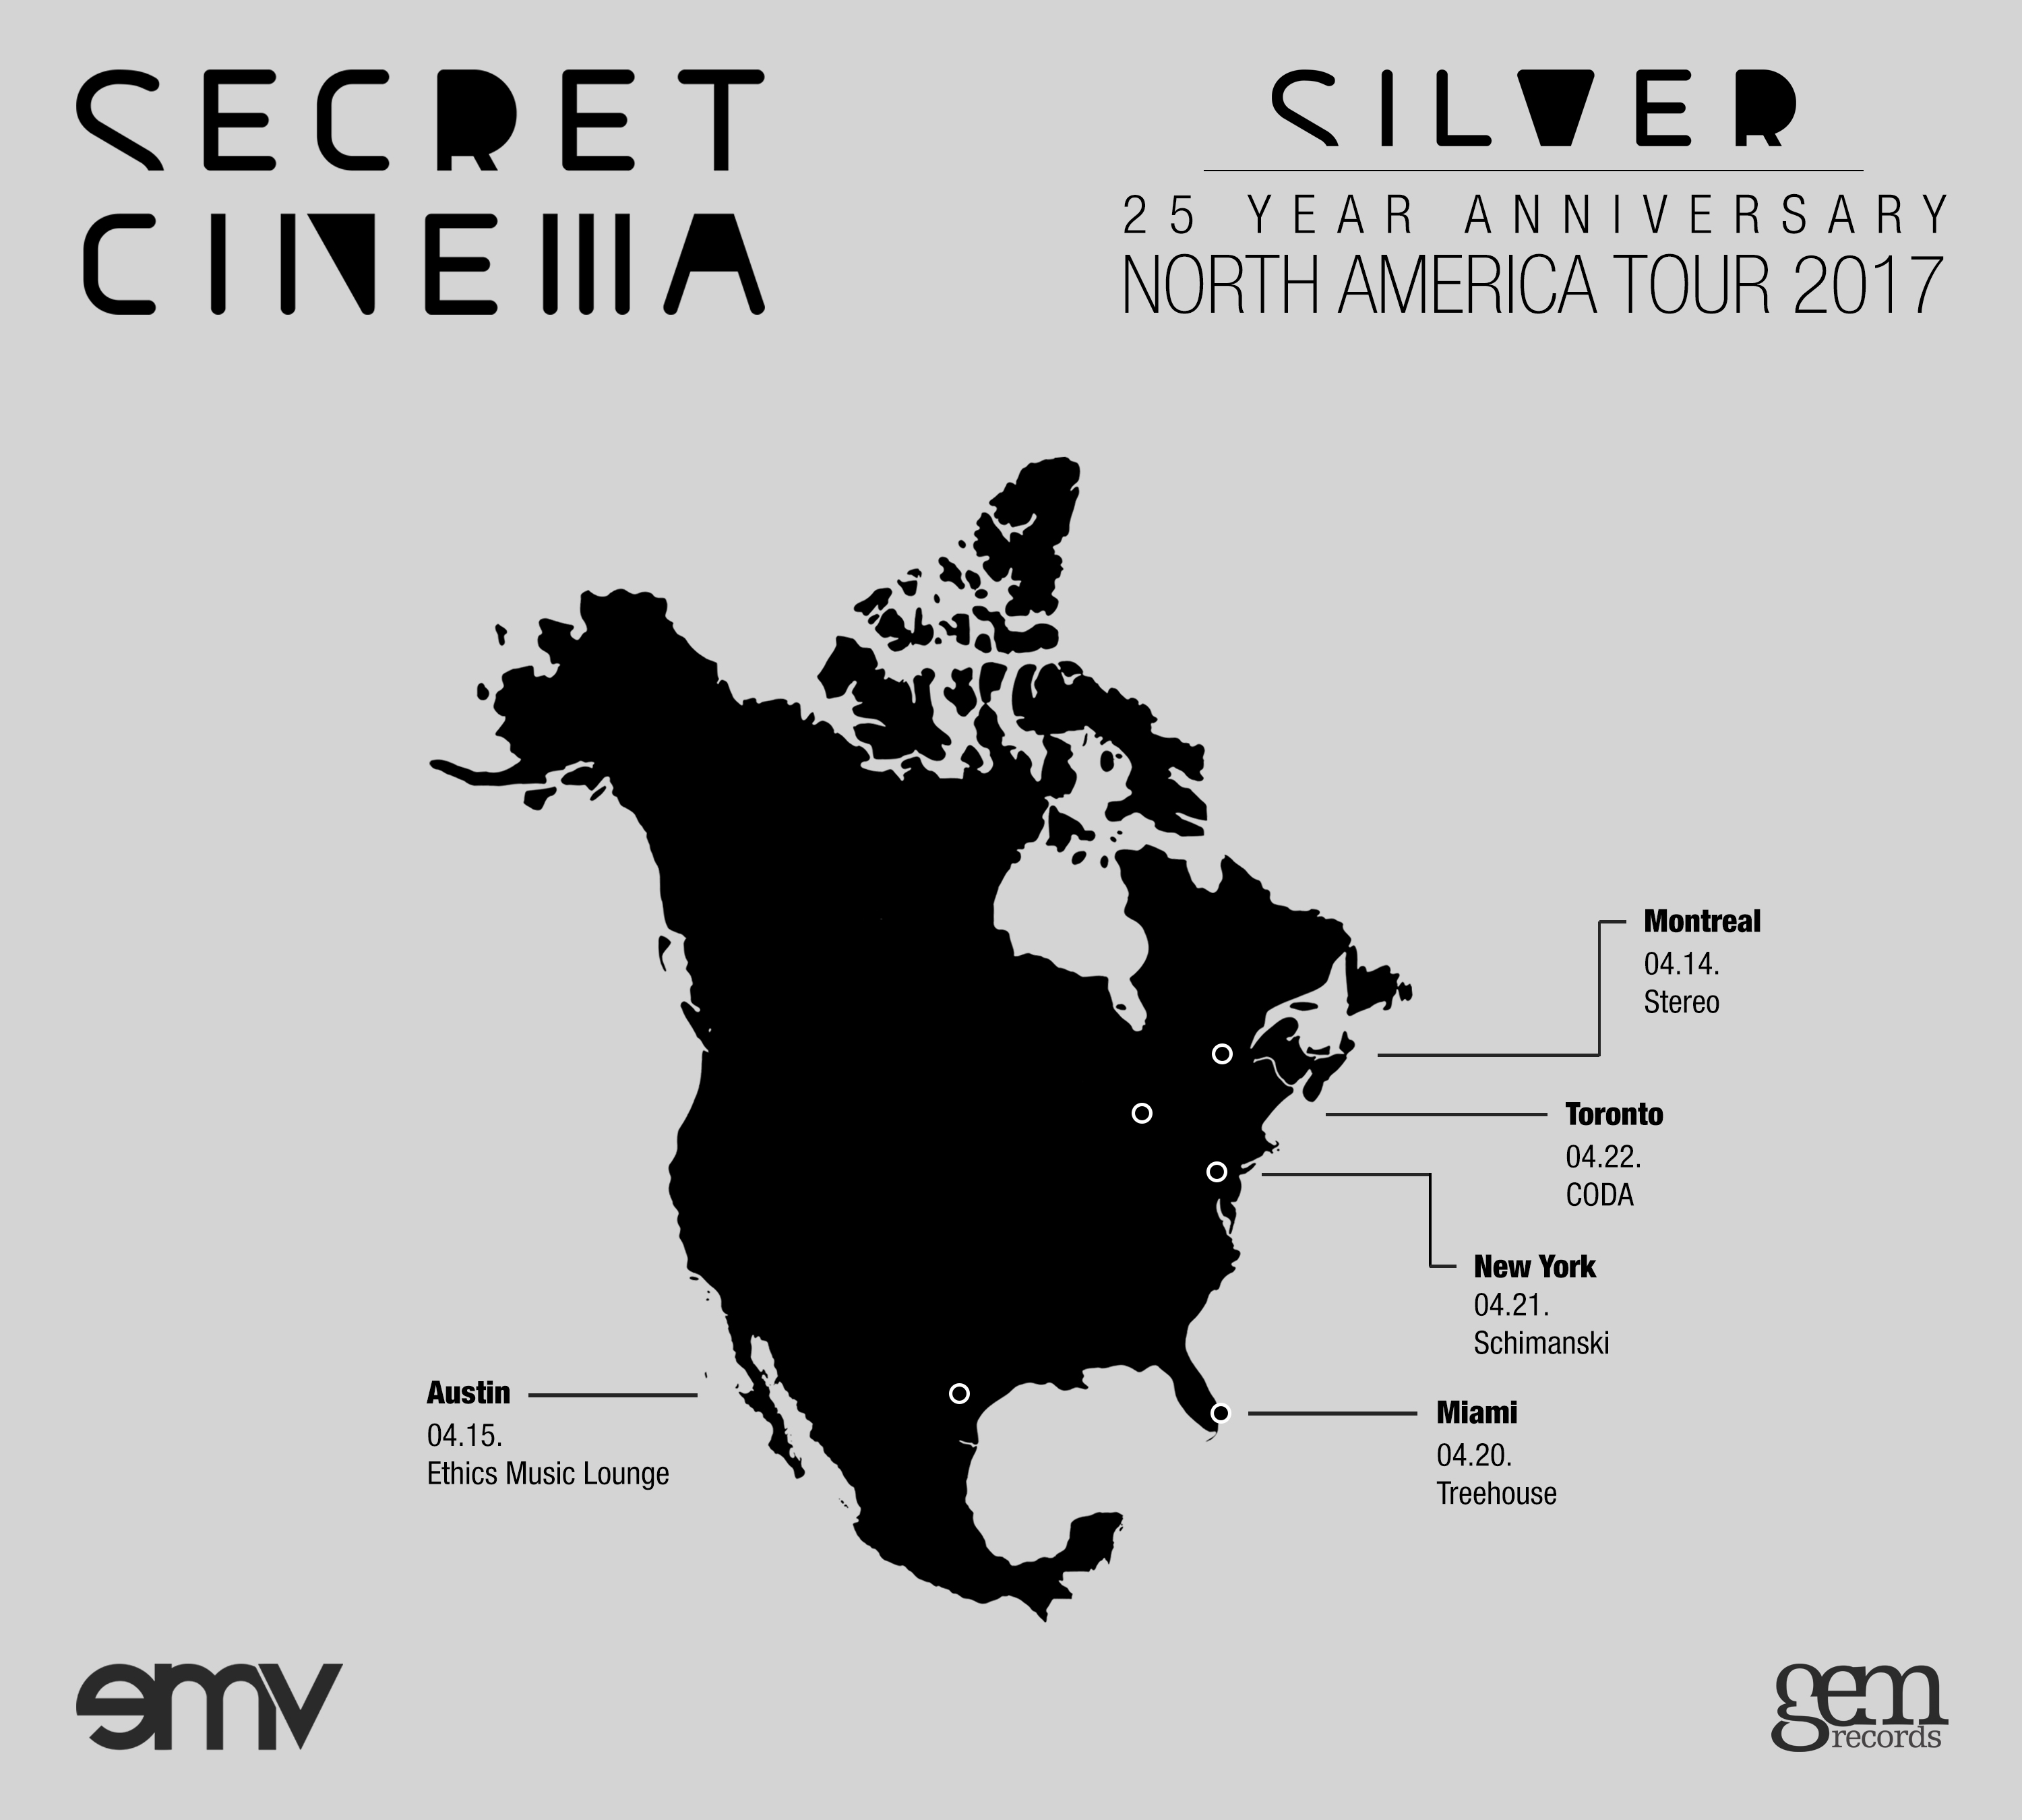 secret cinema NA tour